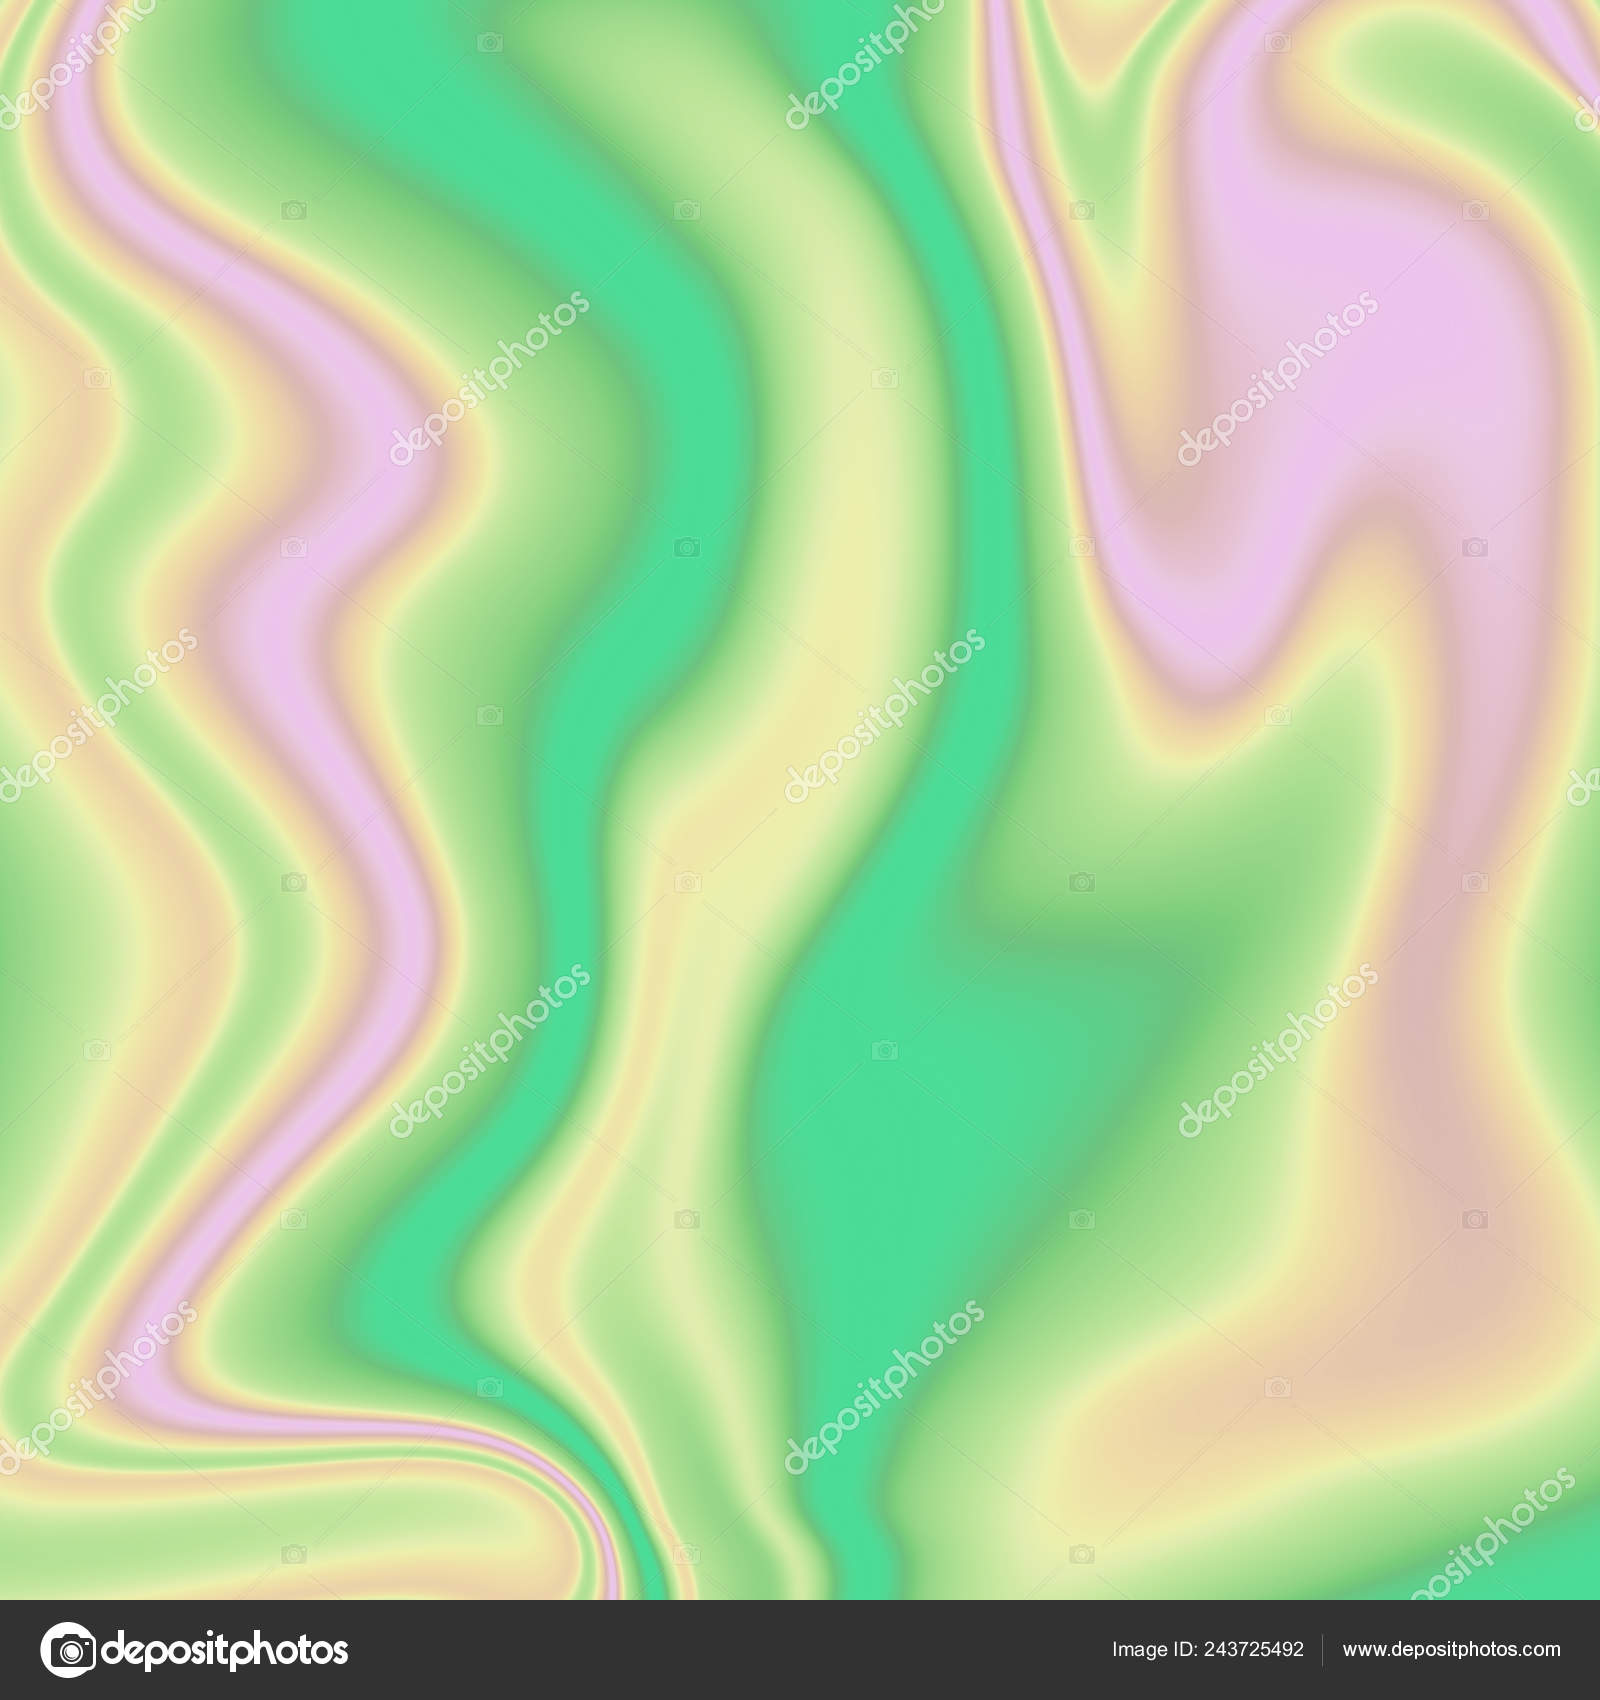 Foil Pastel Pink Yellow Green Colours Abstract Neon Marble Background Stock Photo C Katya Havok 243725492